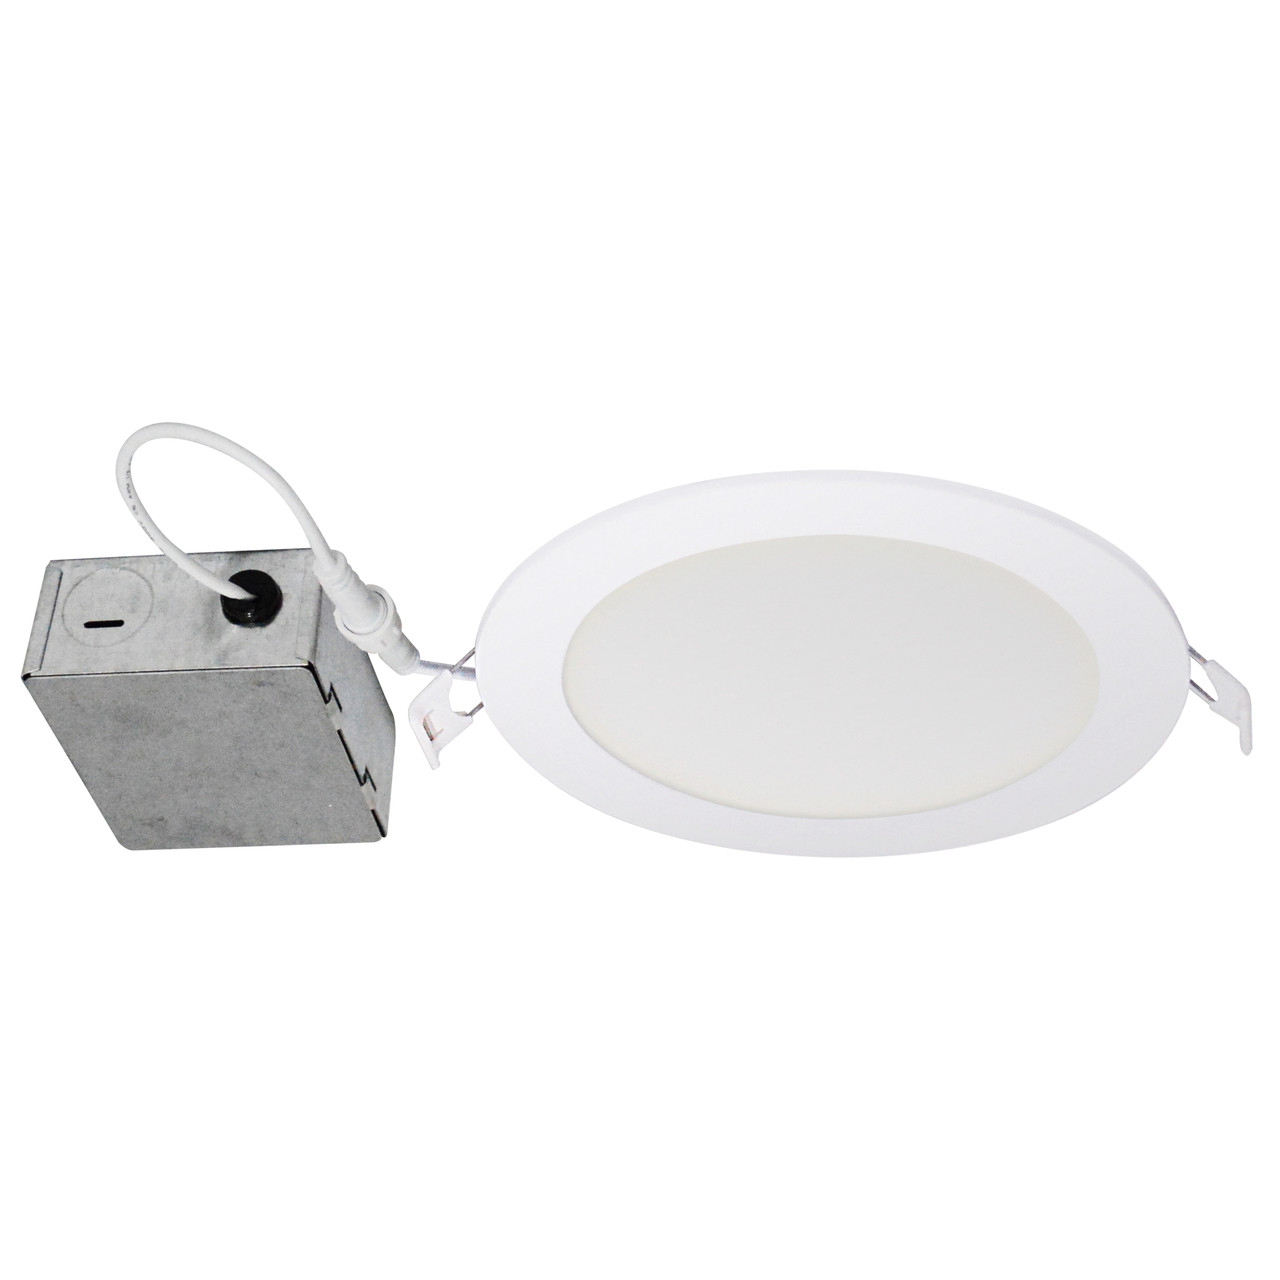 6 led slim recessed downlight round 4000k